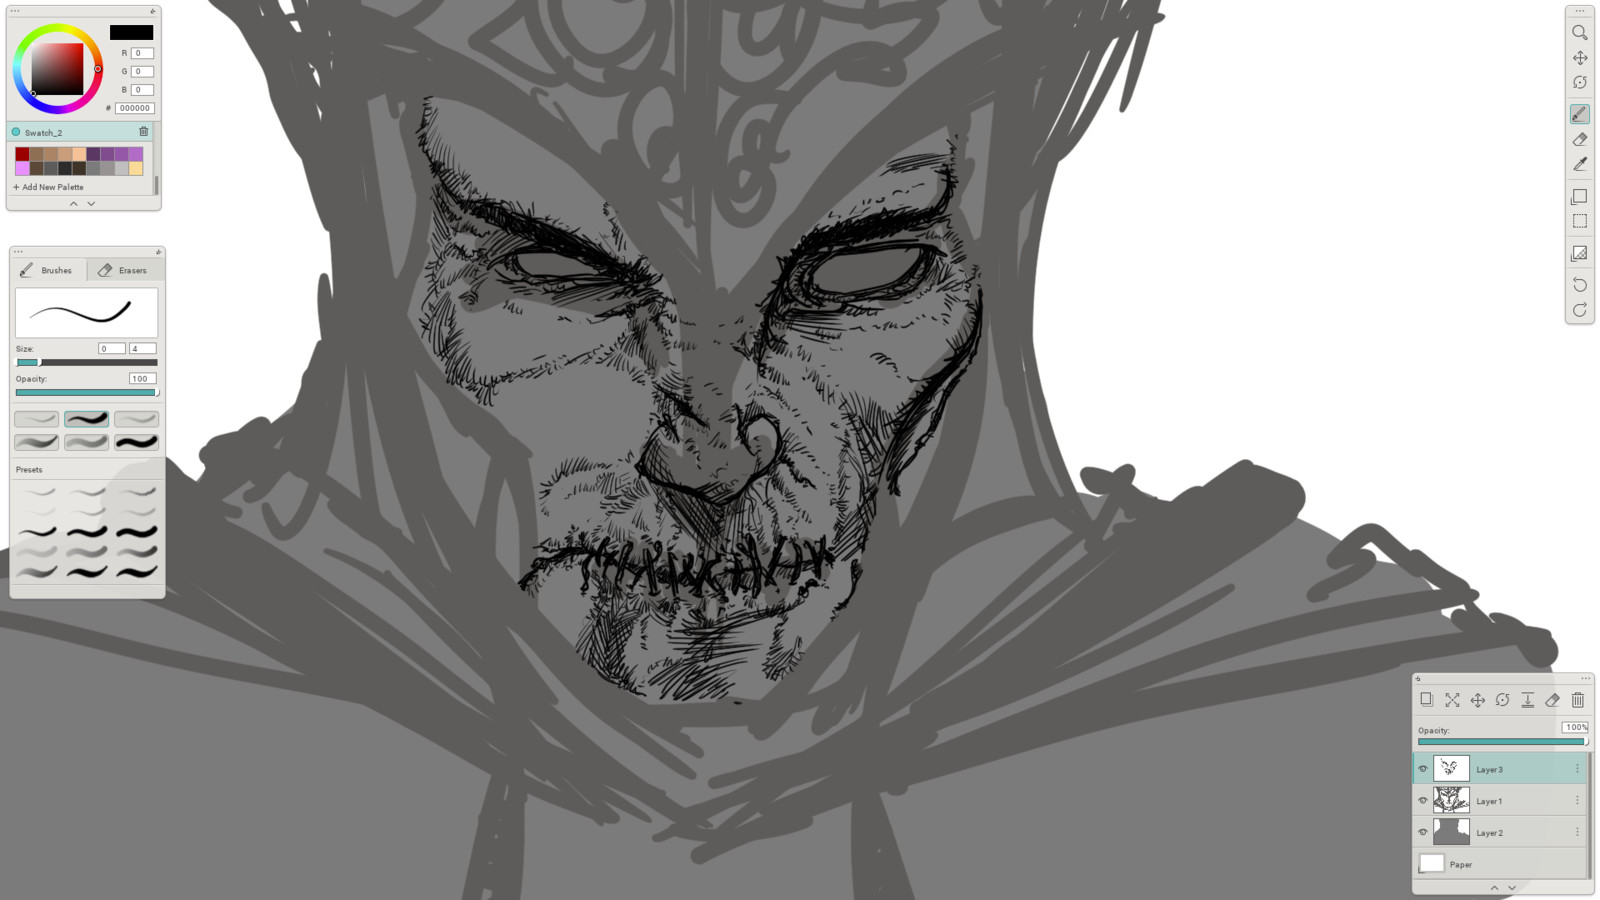 03 - Inking in the details